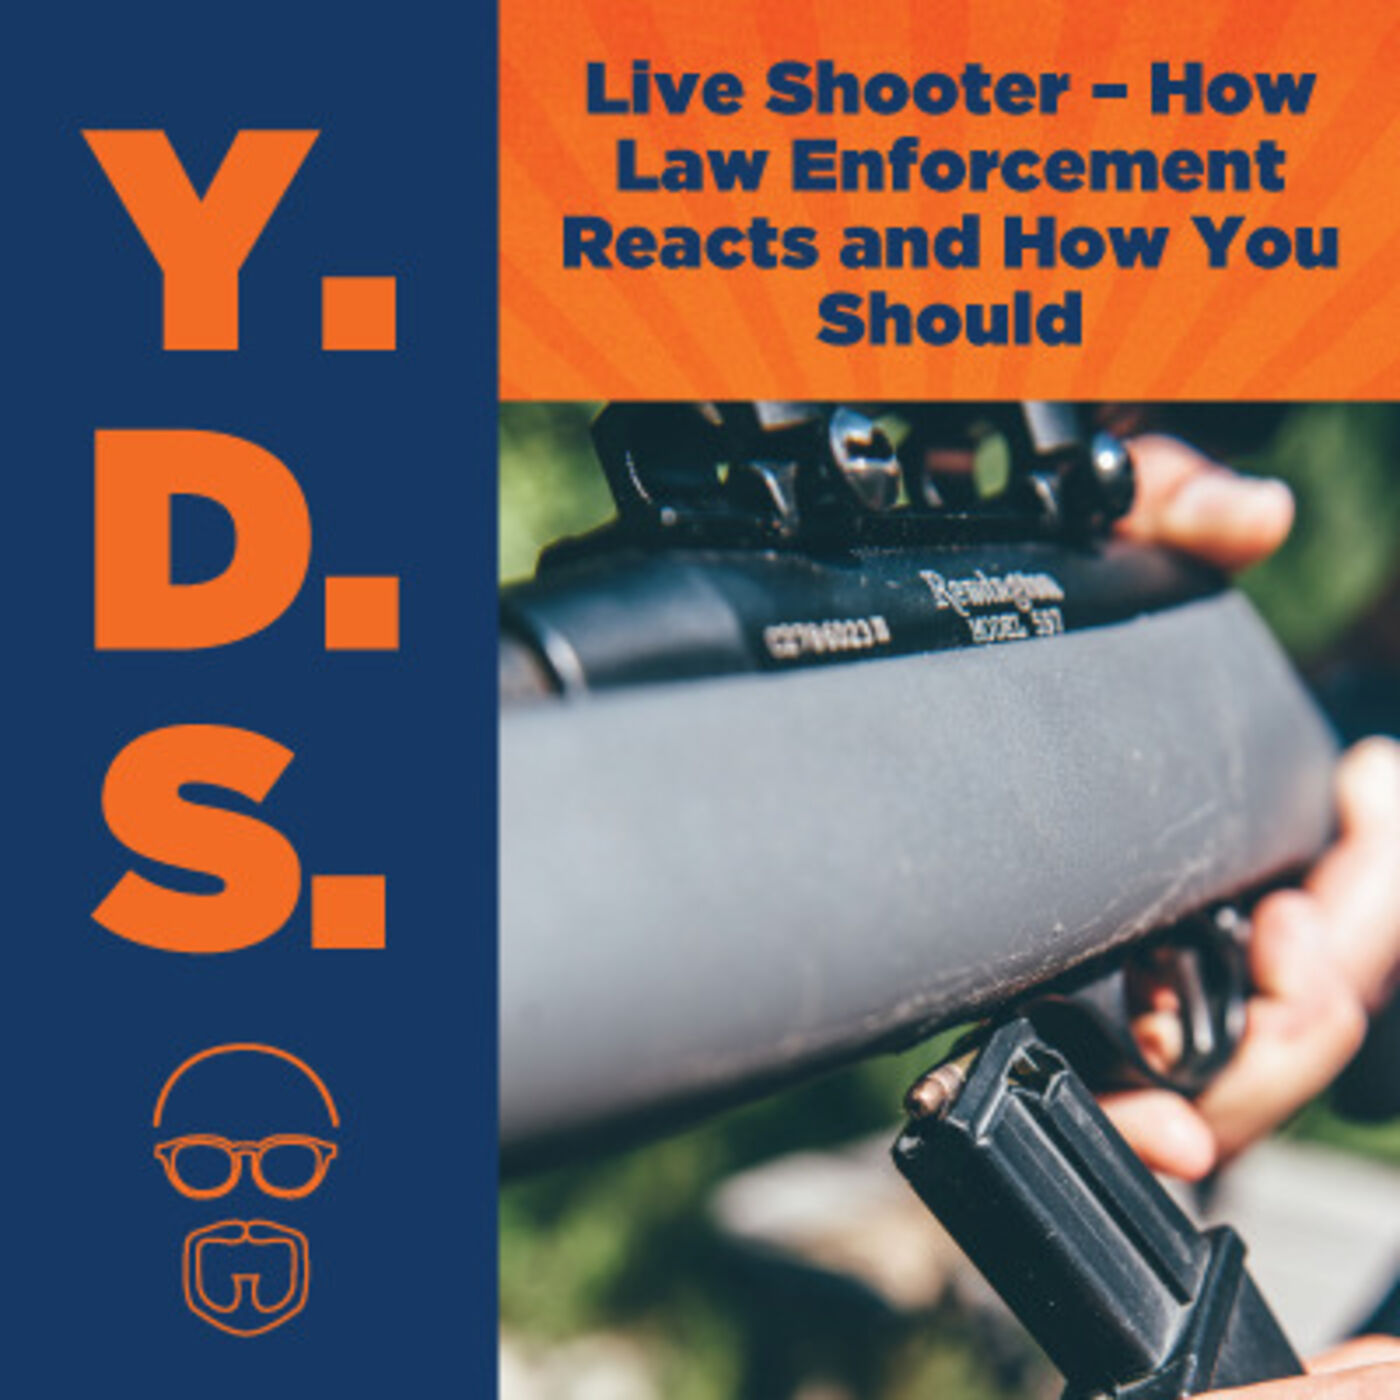 Ep. 13 - Live Shooter – How Law Enforcement Reacts and How You Should